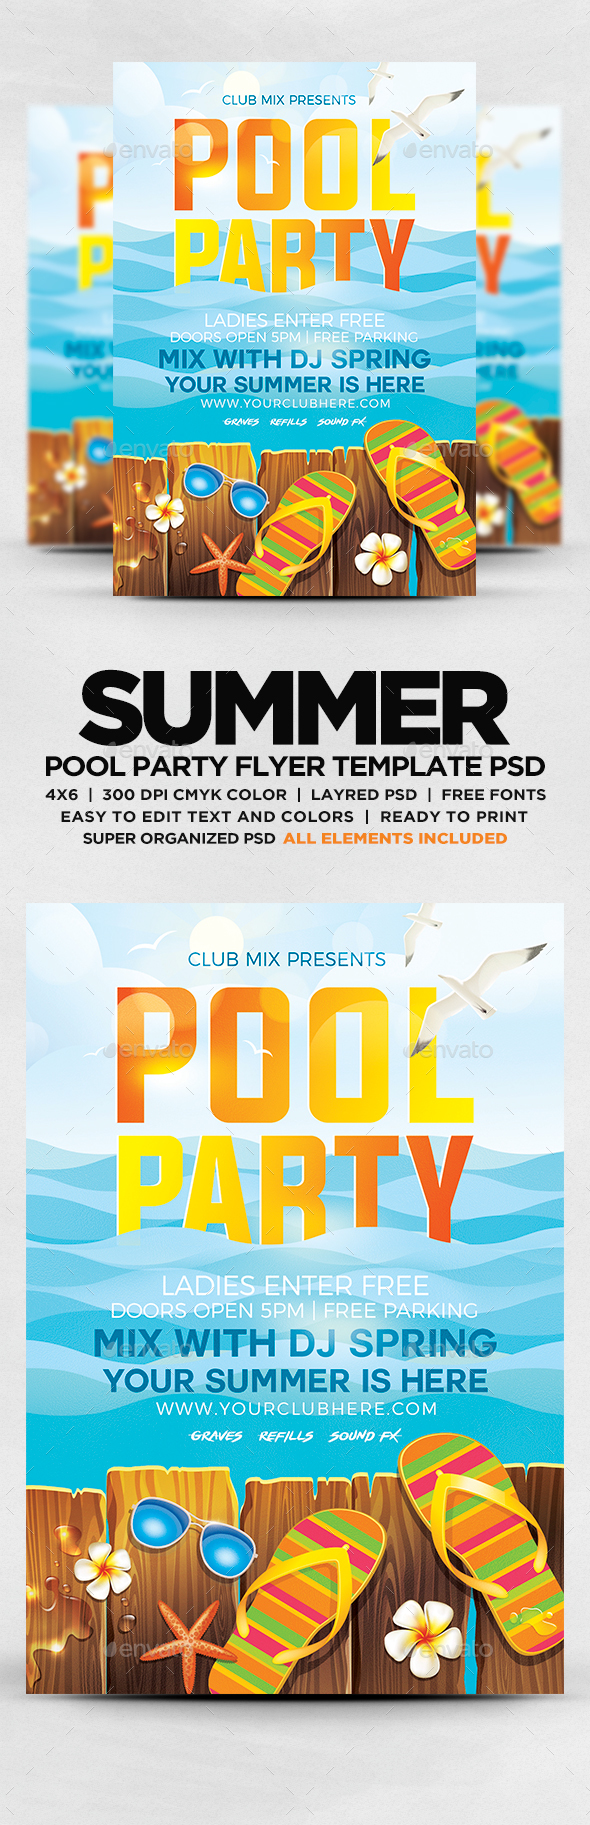 summer pool party flyer flyers print templates download here